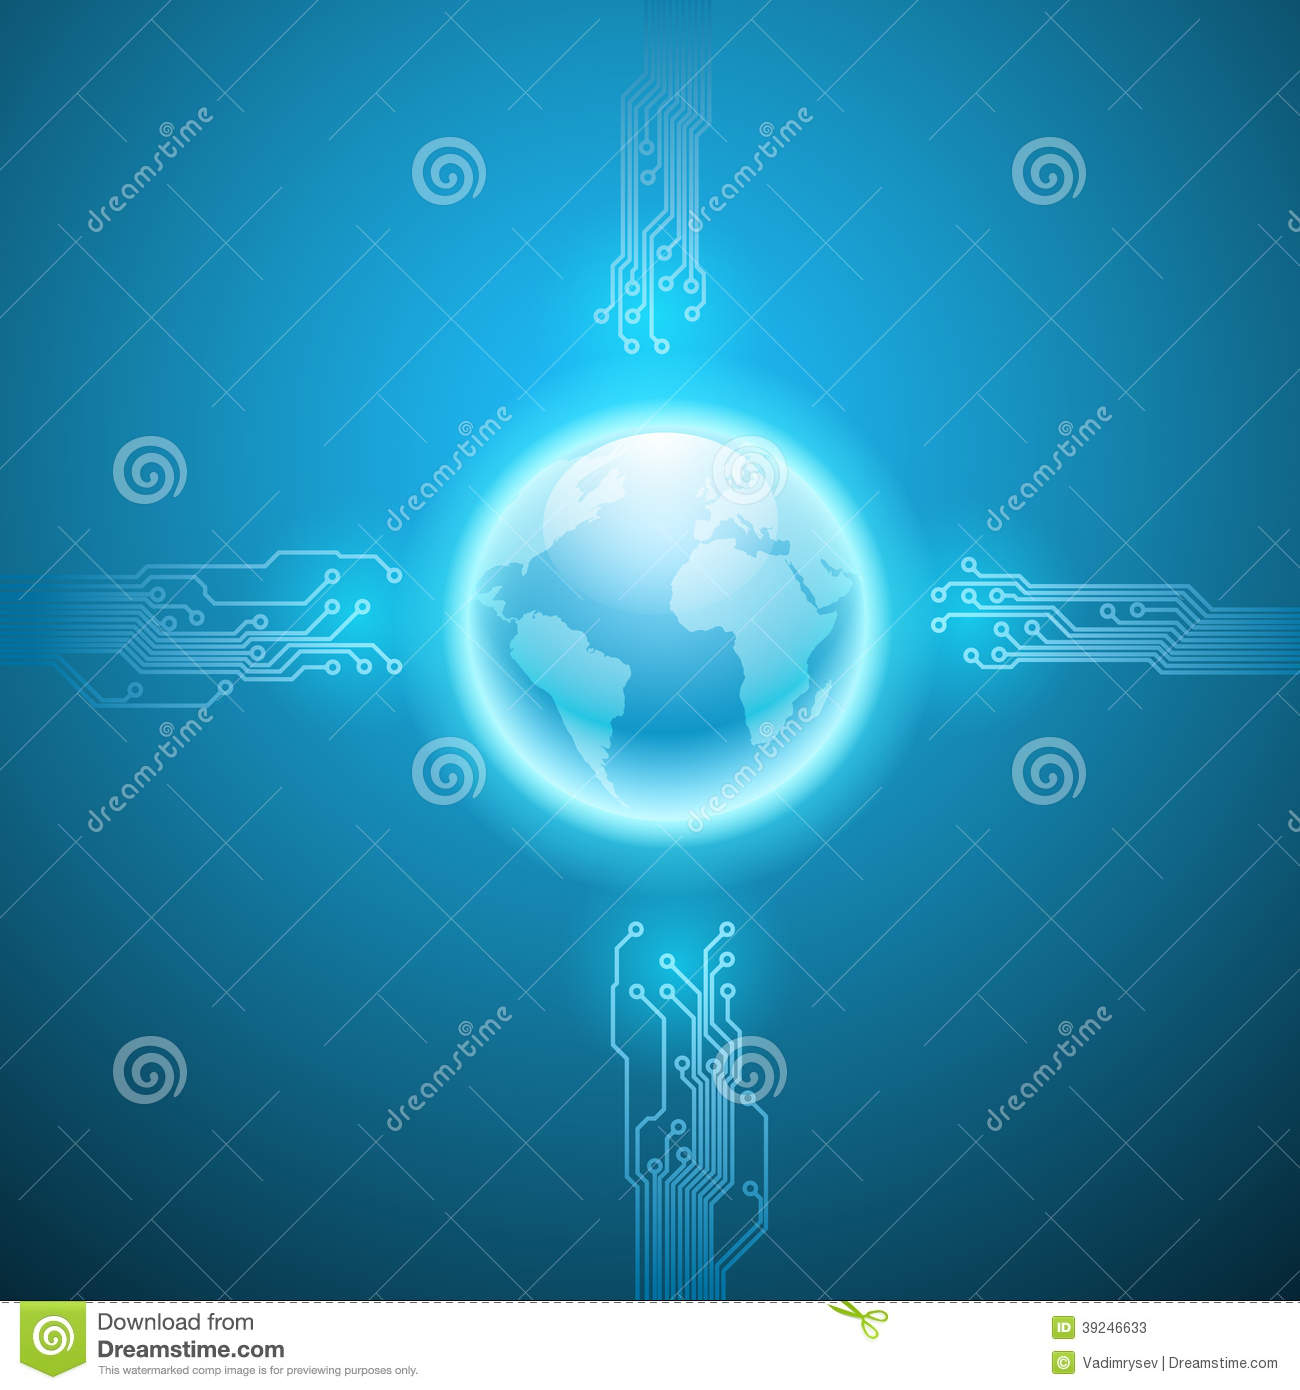 Electronics Blue Background With Circuit Board Stock Vector Boards Like Magic Appears Abstract Texture And The Earth Eps10